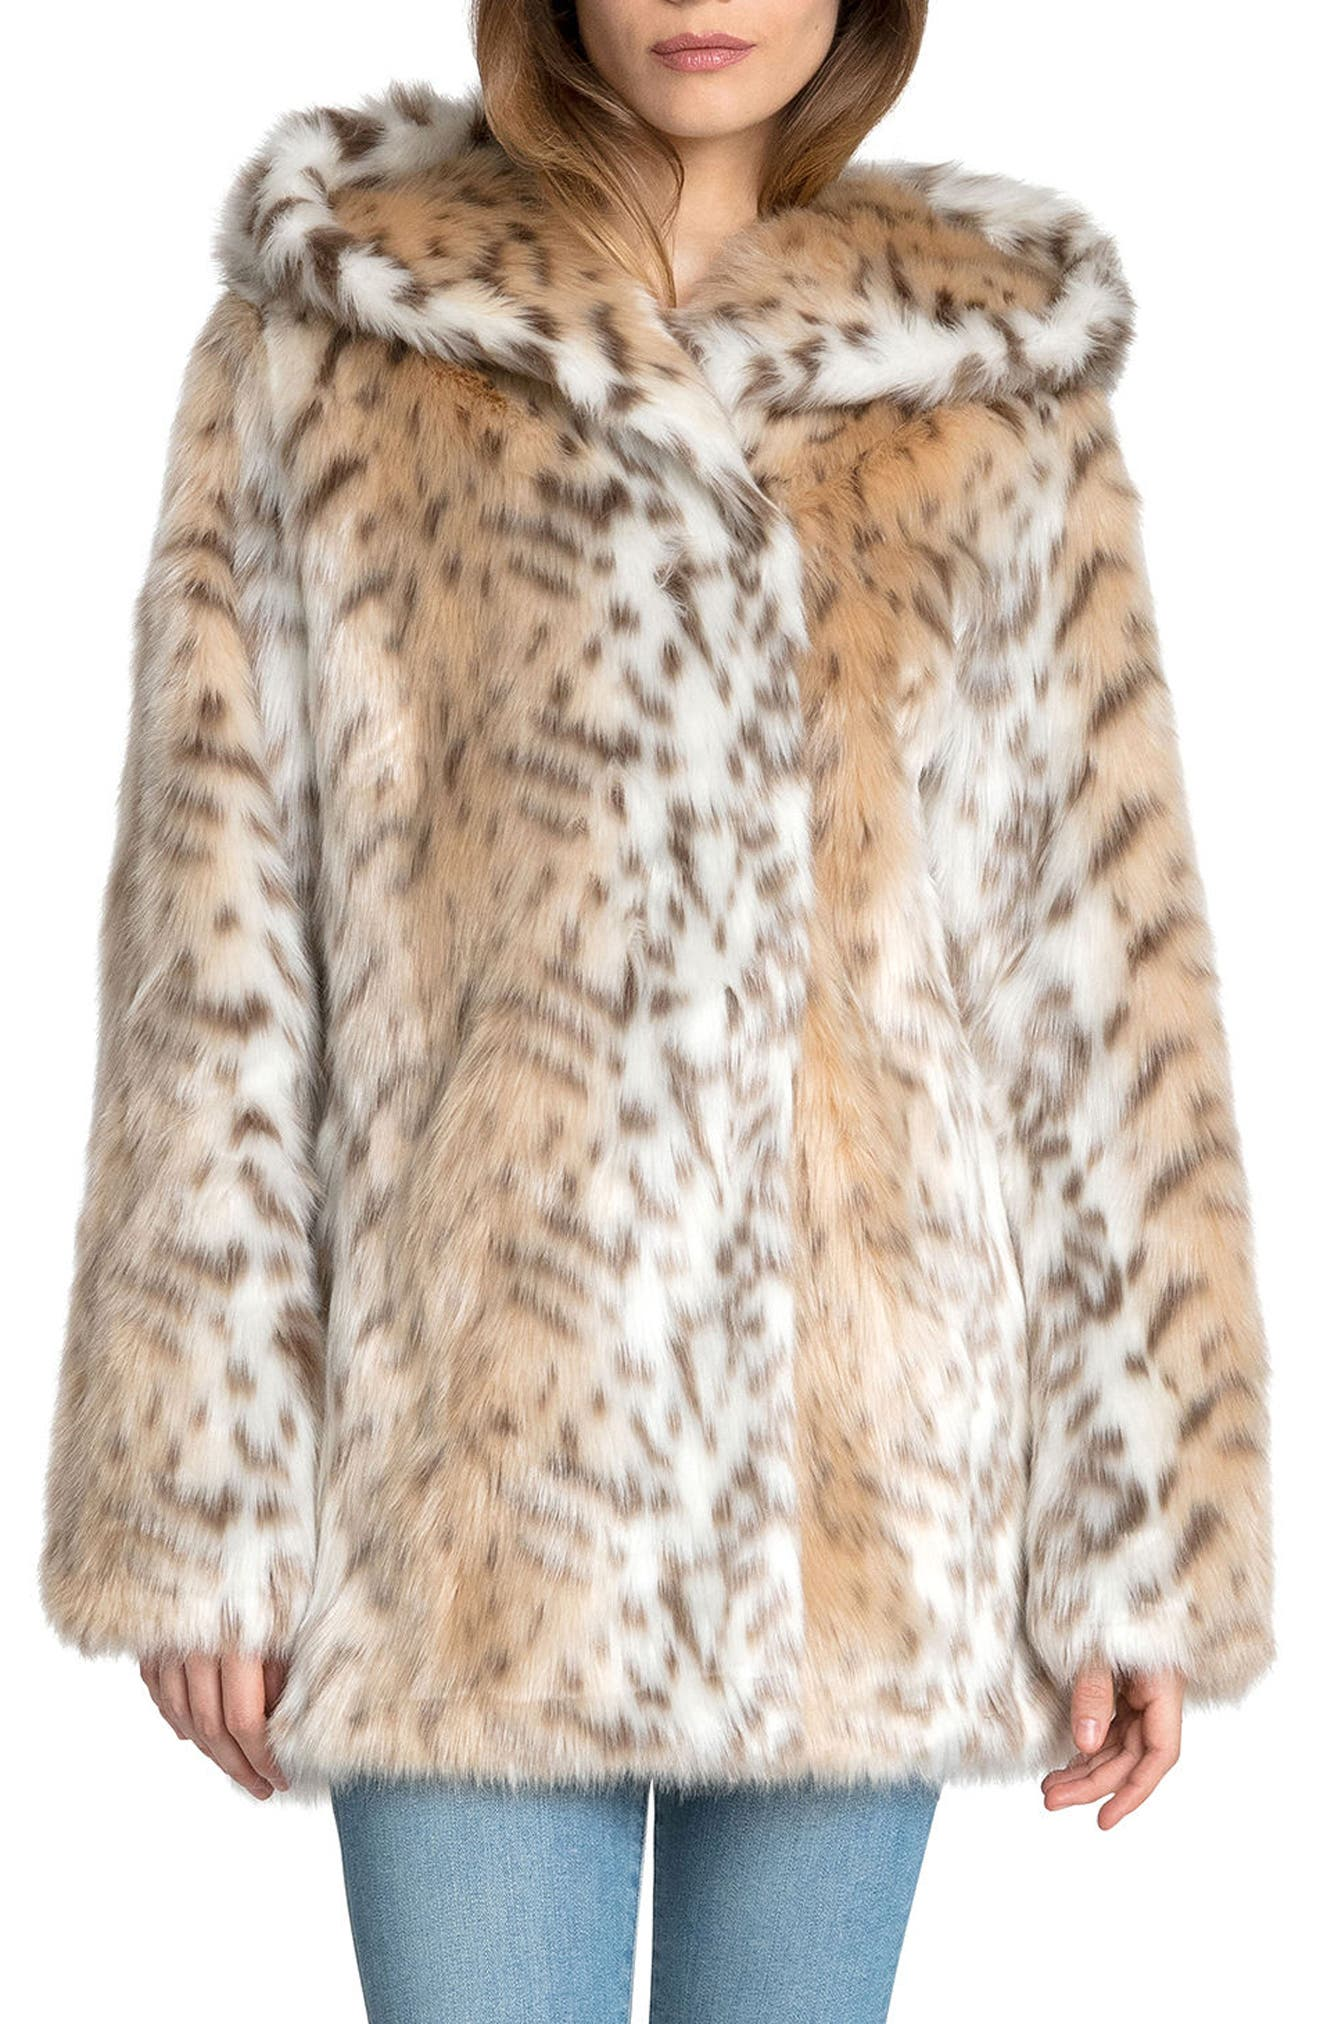 Hooded Faux Fur Jacket,                         Main,                         color, 251